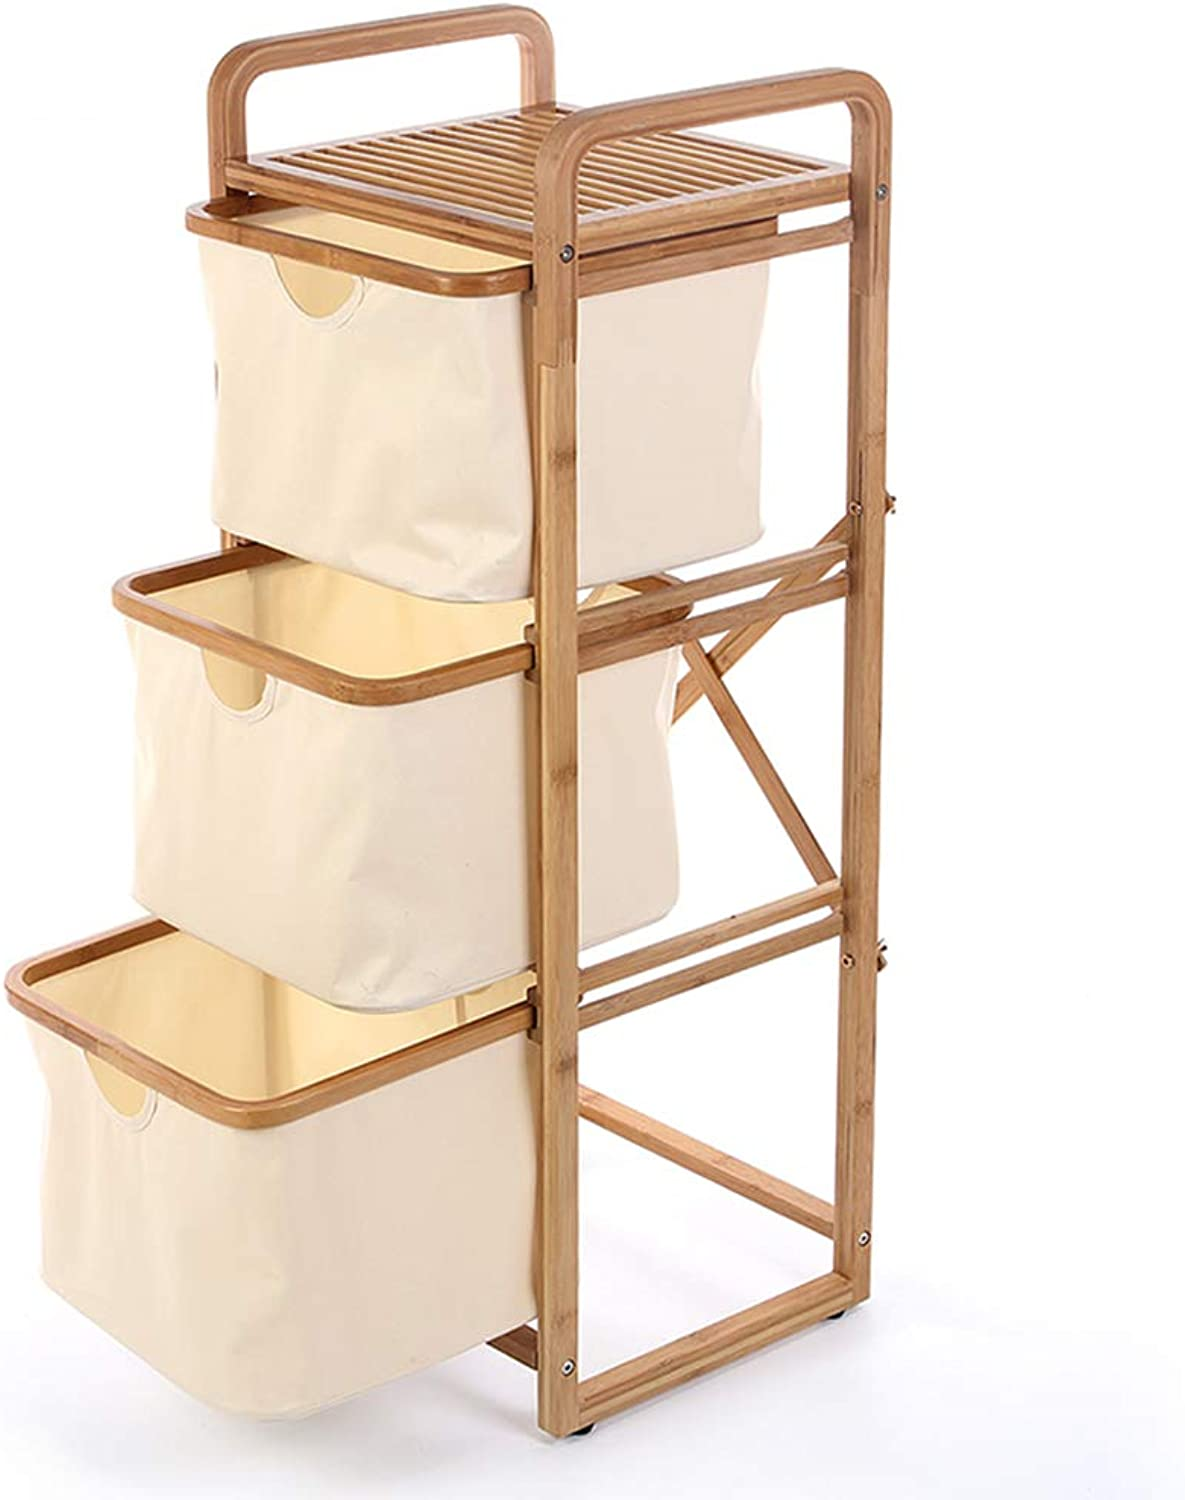 Bookshelf Utility Storage Bookcase Rack CDs Movies Books Toy Display Shelves Flower Stand, 4 Tier Bamboo Frame with Drawer